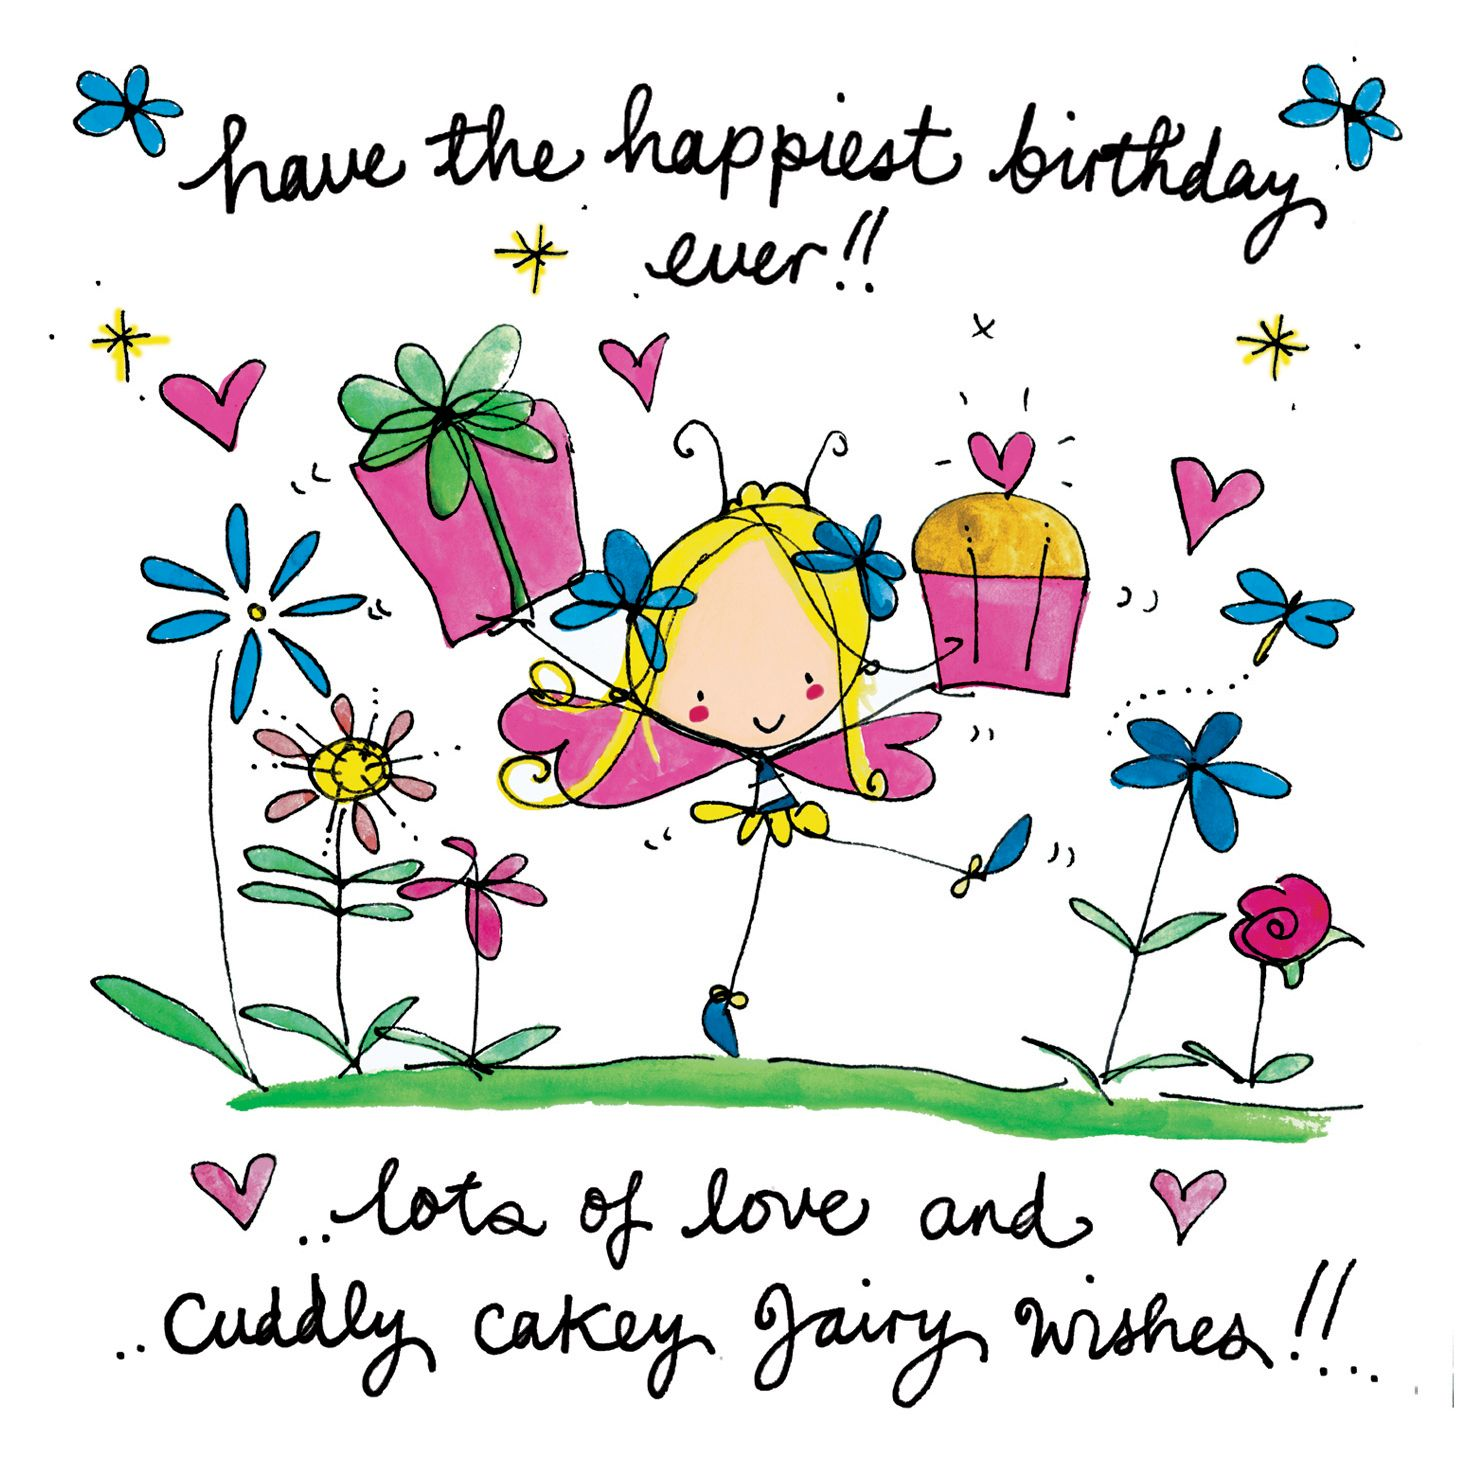 Have the happiest birthday ever Birthday Wishes